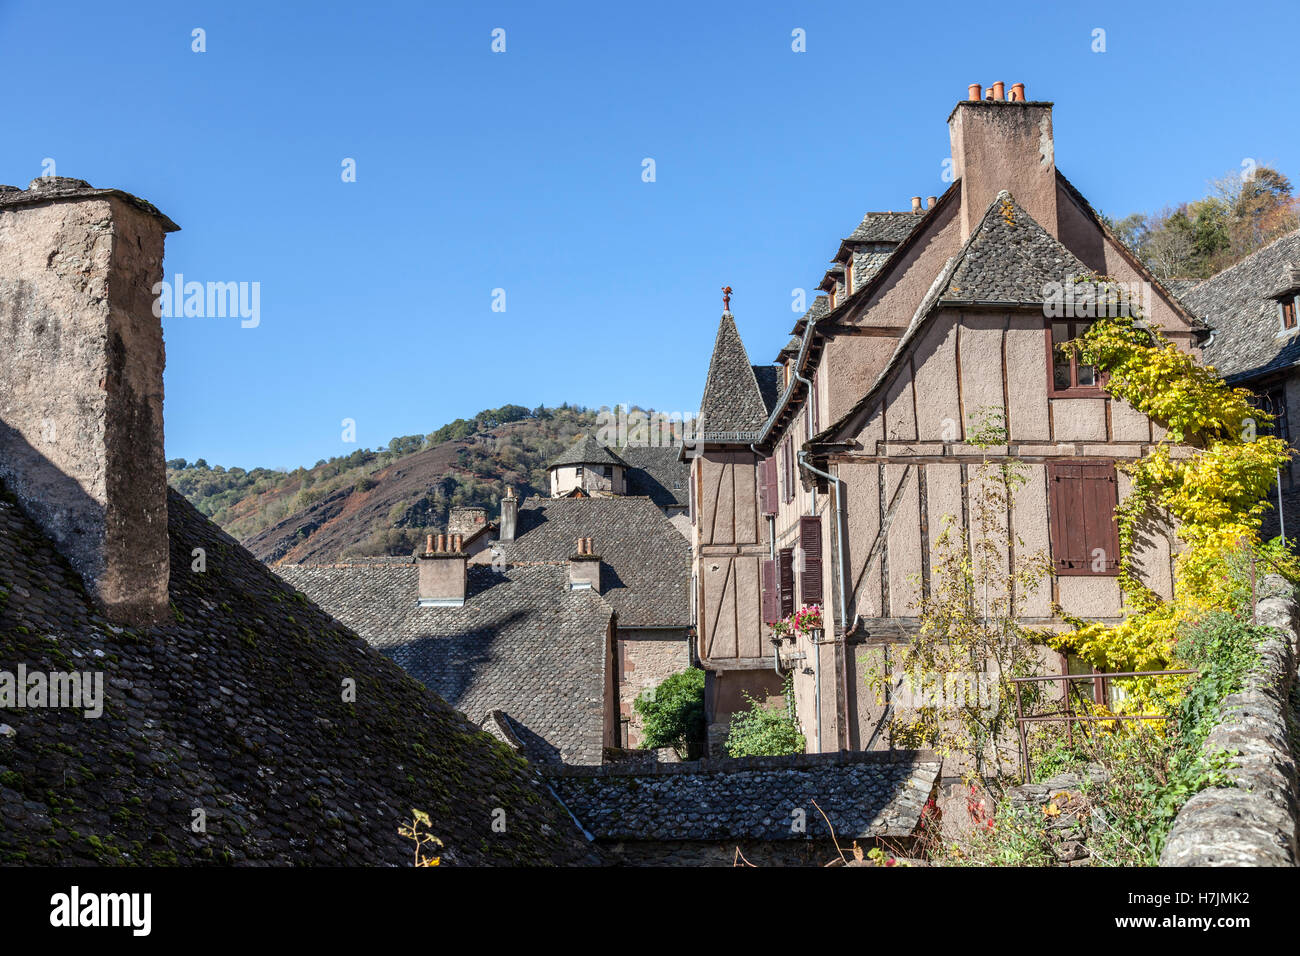 The small medieval village of Conques (Aveyron - France). It shows visitors its old clustered houses topped with - Stock Image